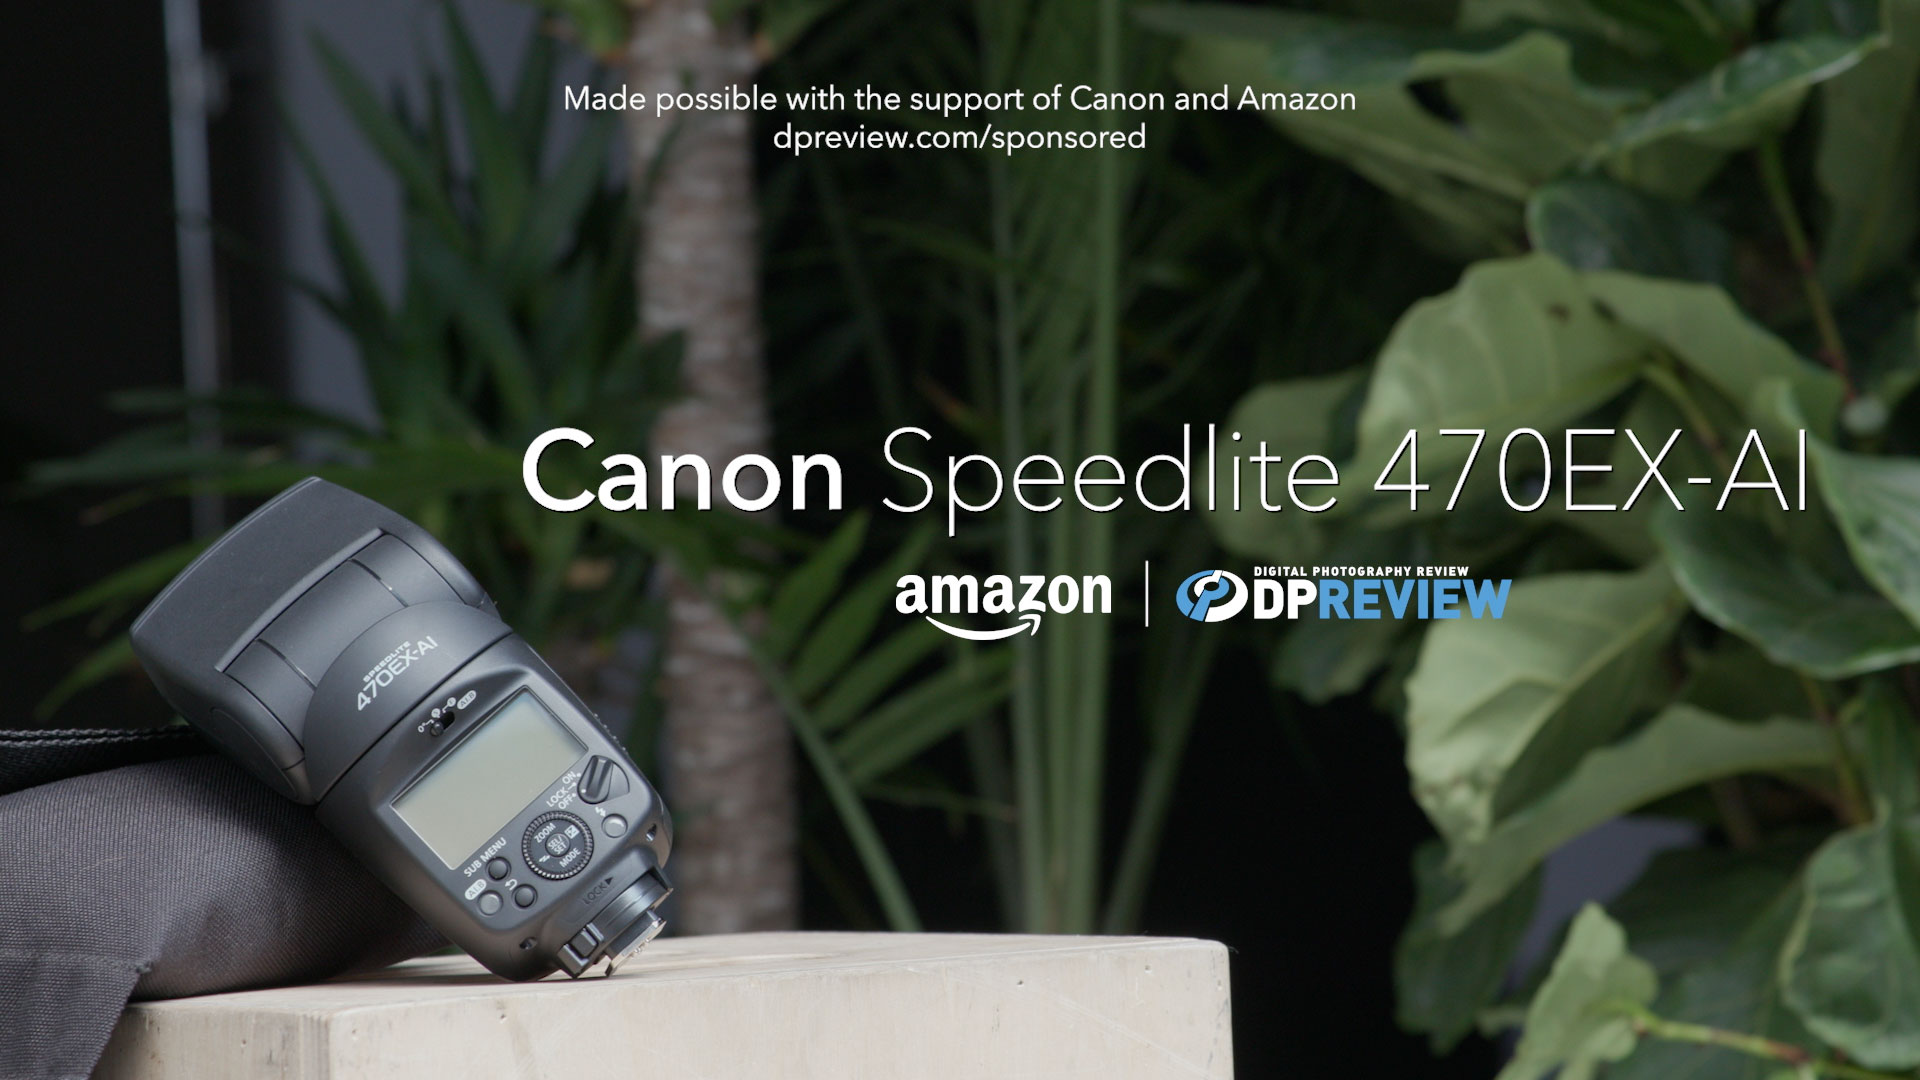 DPReview Canon Speedlite 470EX-AI Overview